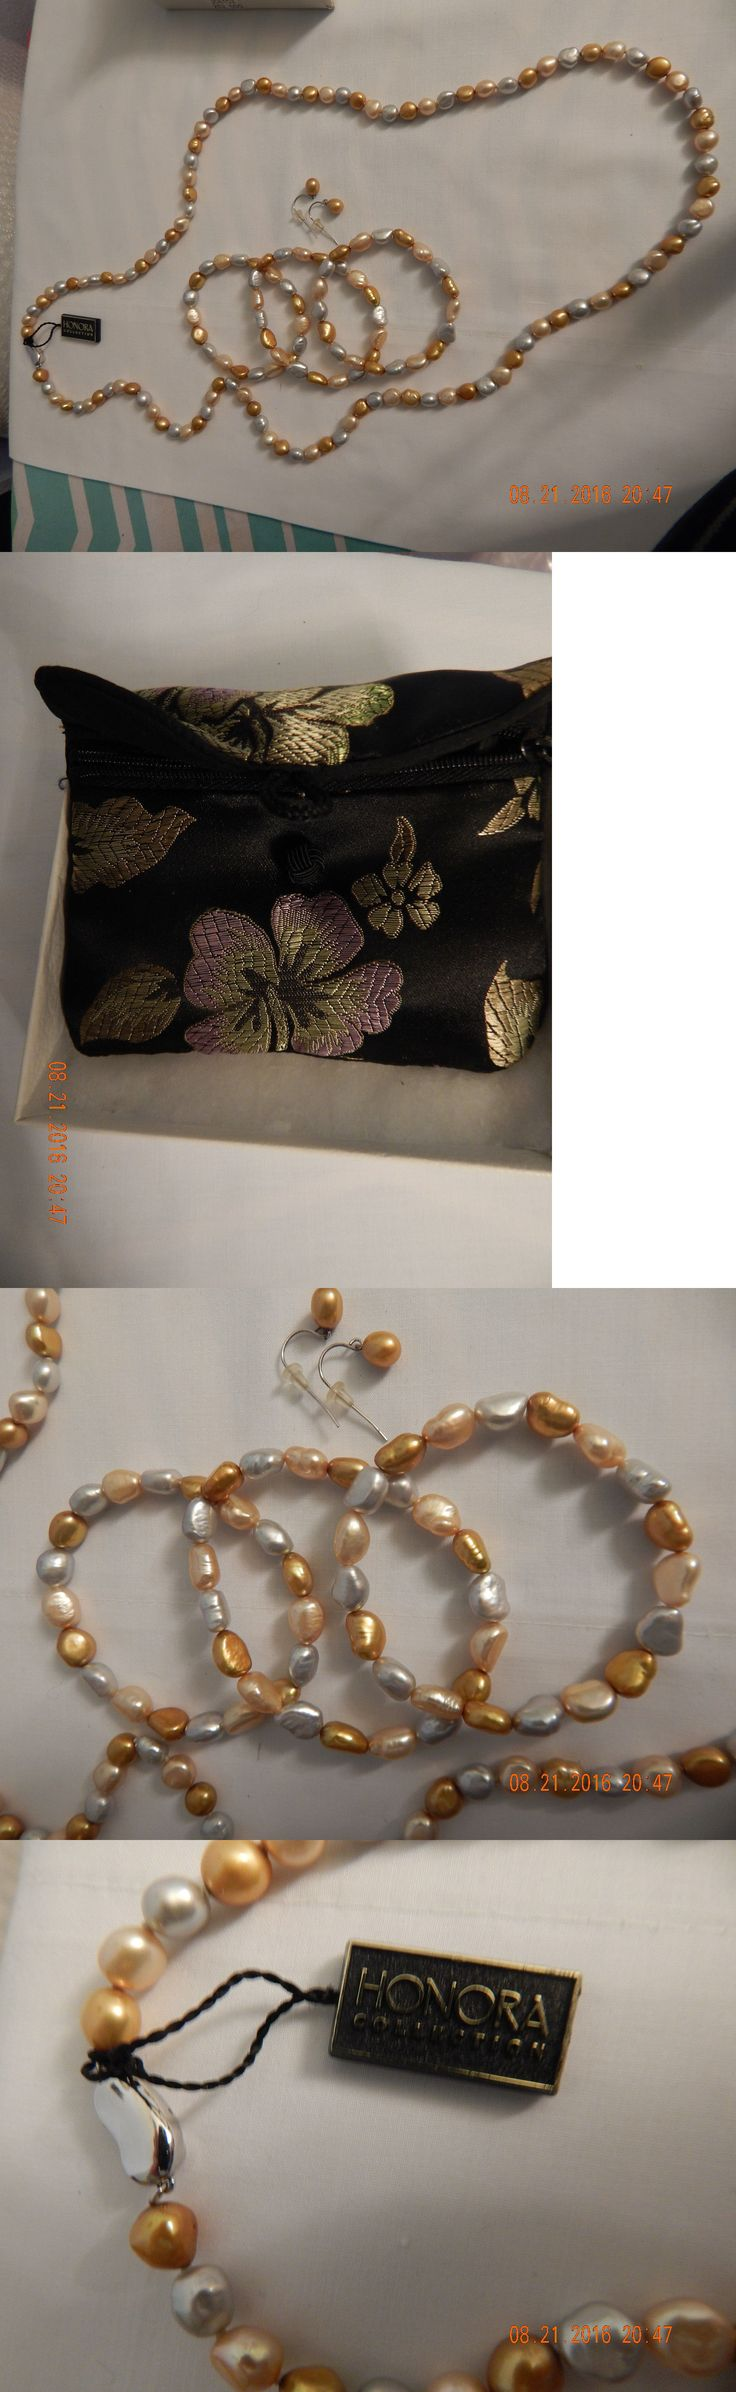 Pearl 164327: Honora 6-7Mm Multicolor Gold Ivory Silver 36 Baroque Pearl Set, New From Qvc! -> BUY IT NOW ONLY: $78 on eBay!